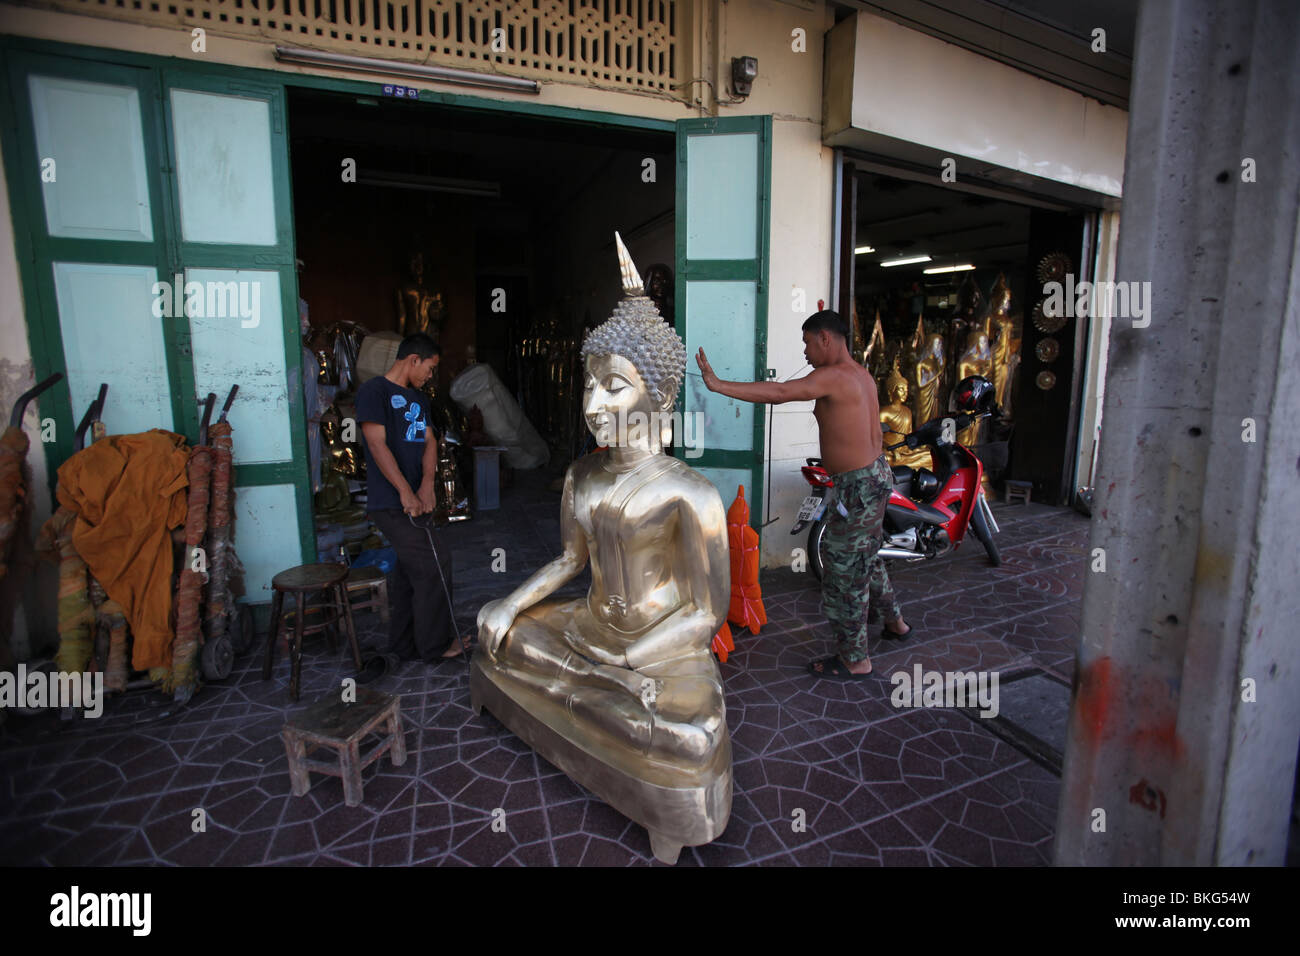 Buddhism for sale - A commercial shop in Bangkok, Thailand. - Stock Image